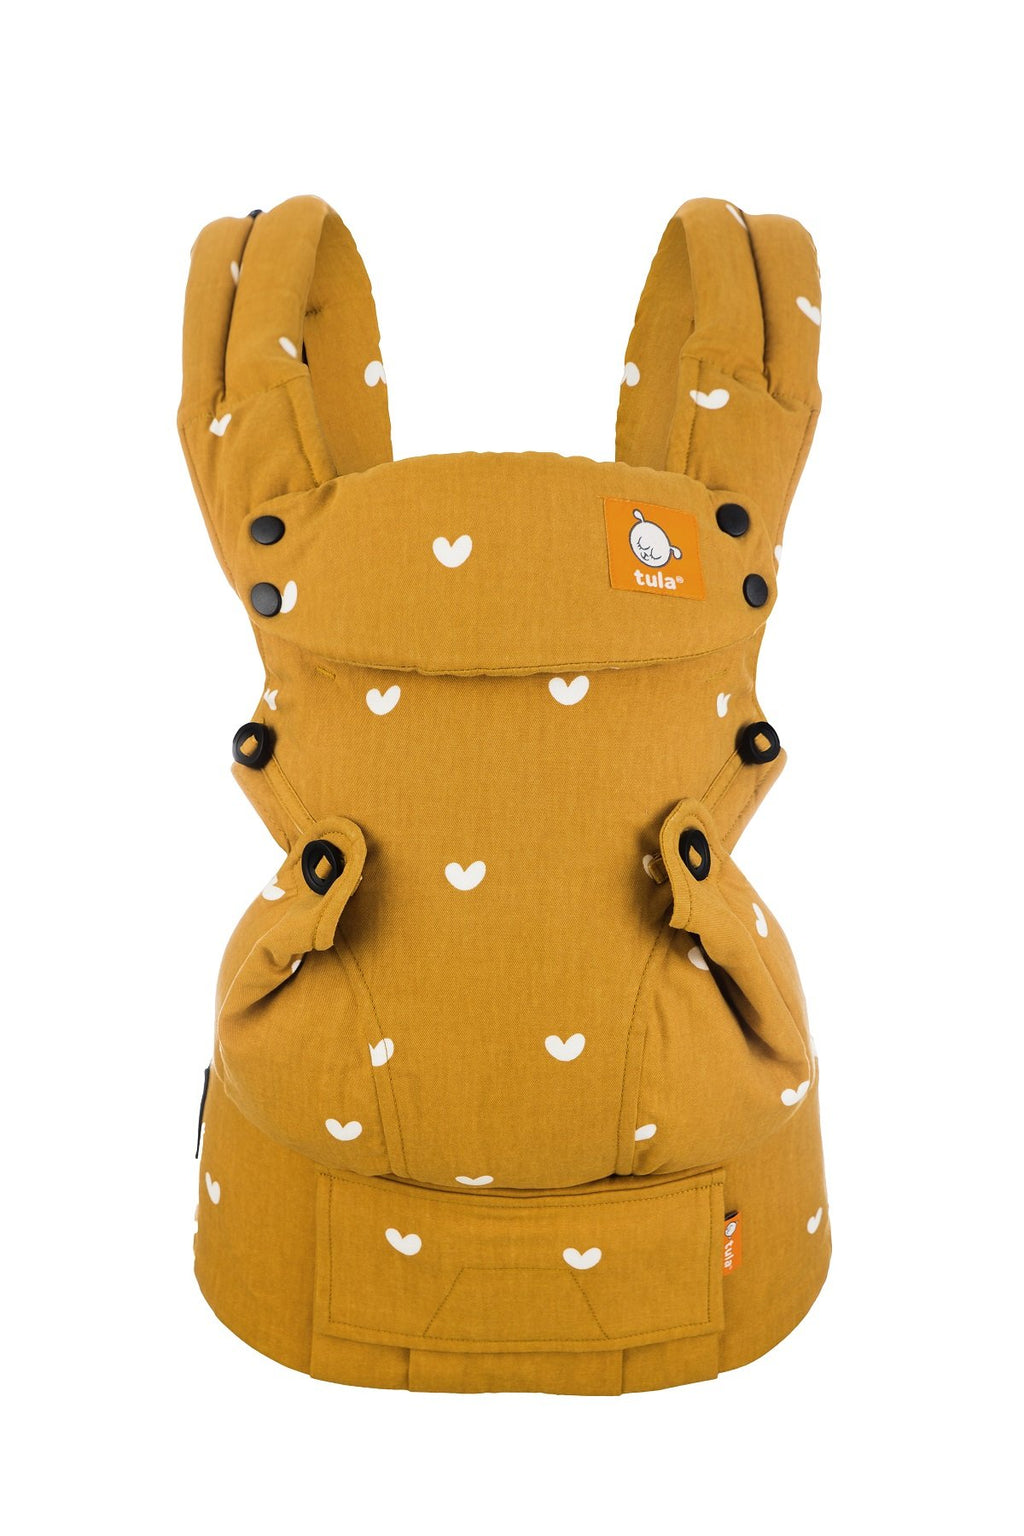 Play - Tula Explore Baby Carrier